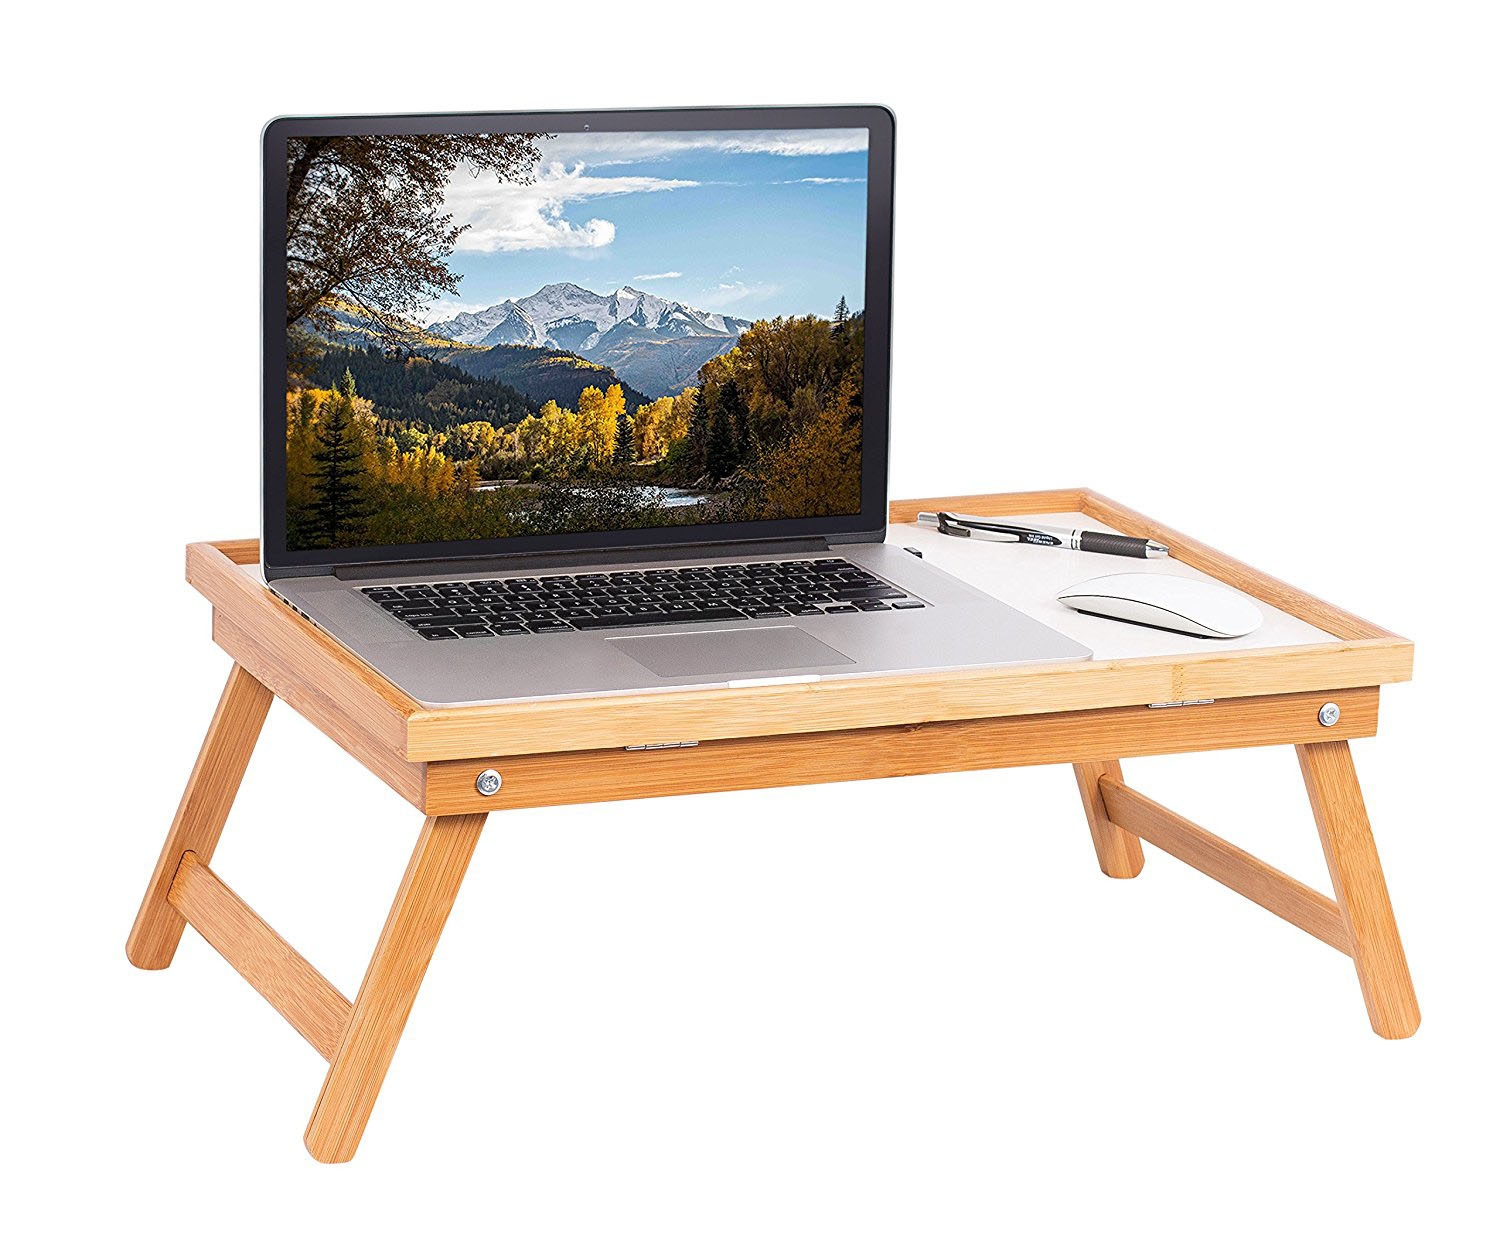 Merveilleux Bamboo Lap Tray Reading Work Eating Couch Bed Natural Book Holder Laptop  White